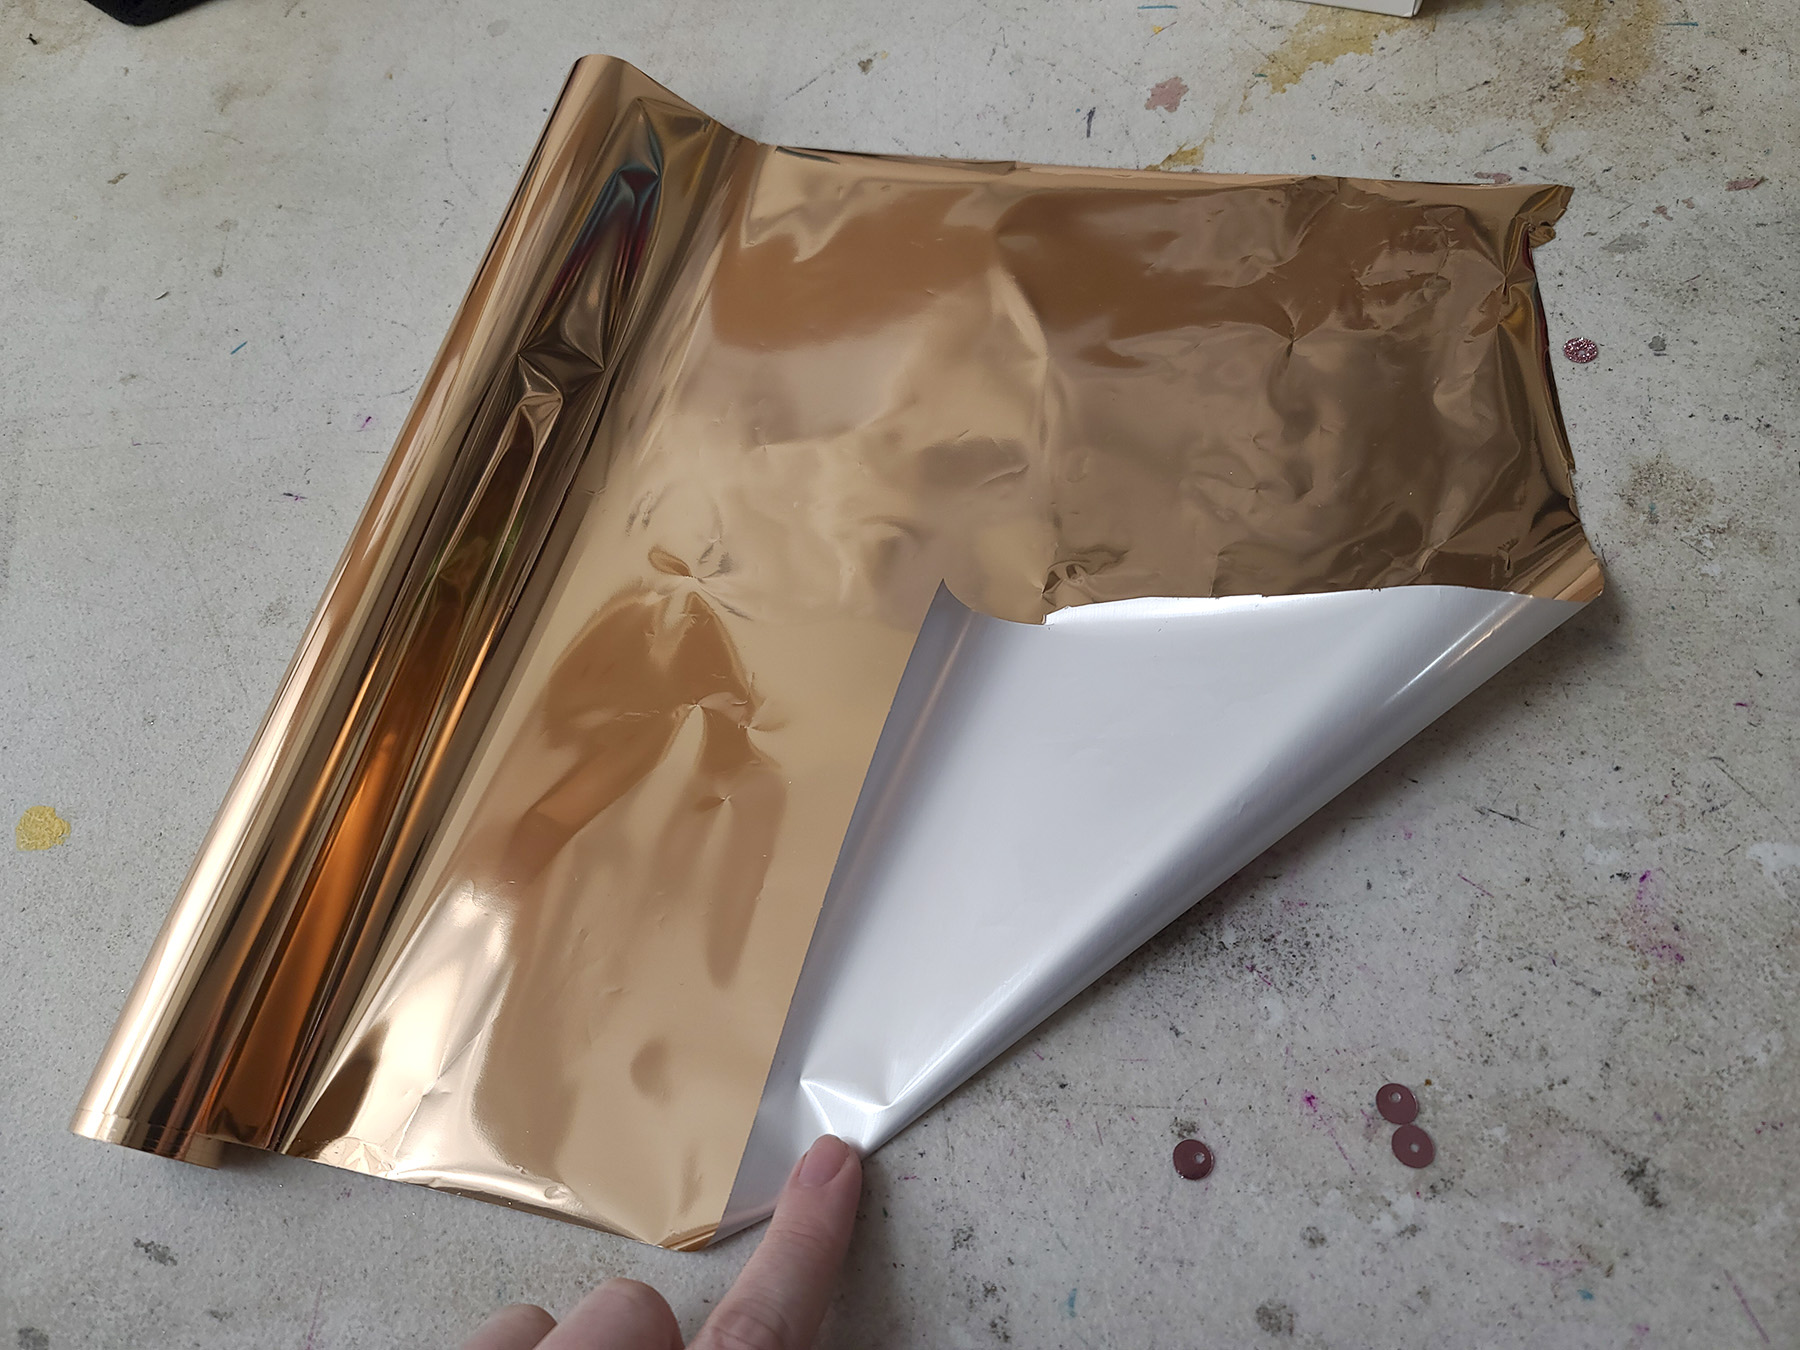 A roll of copper coloured foil paper. The corner is liften up, showing a white/silver underside.